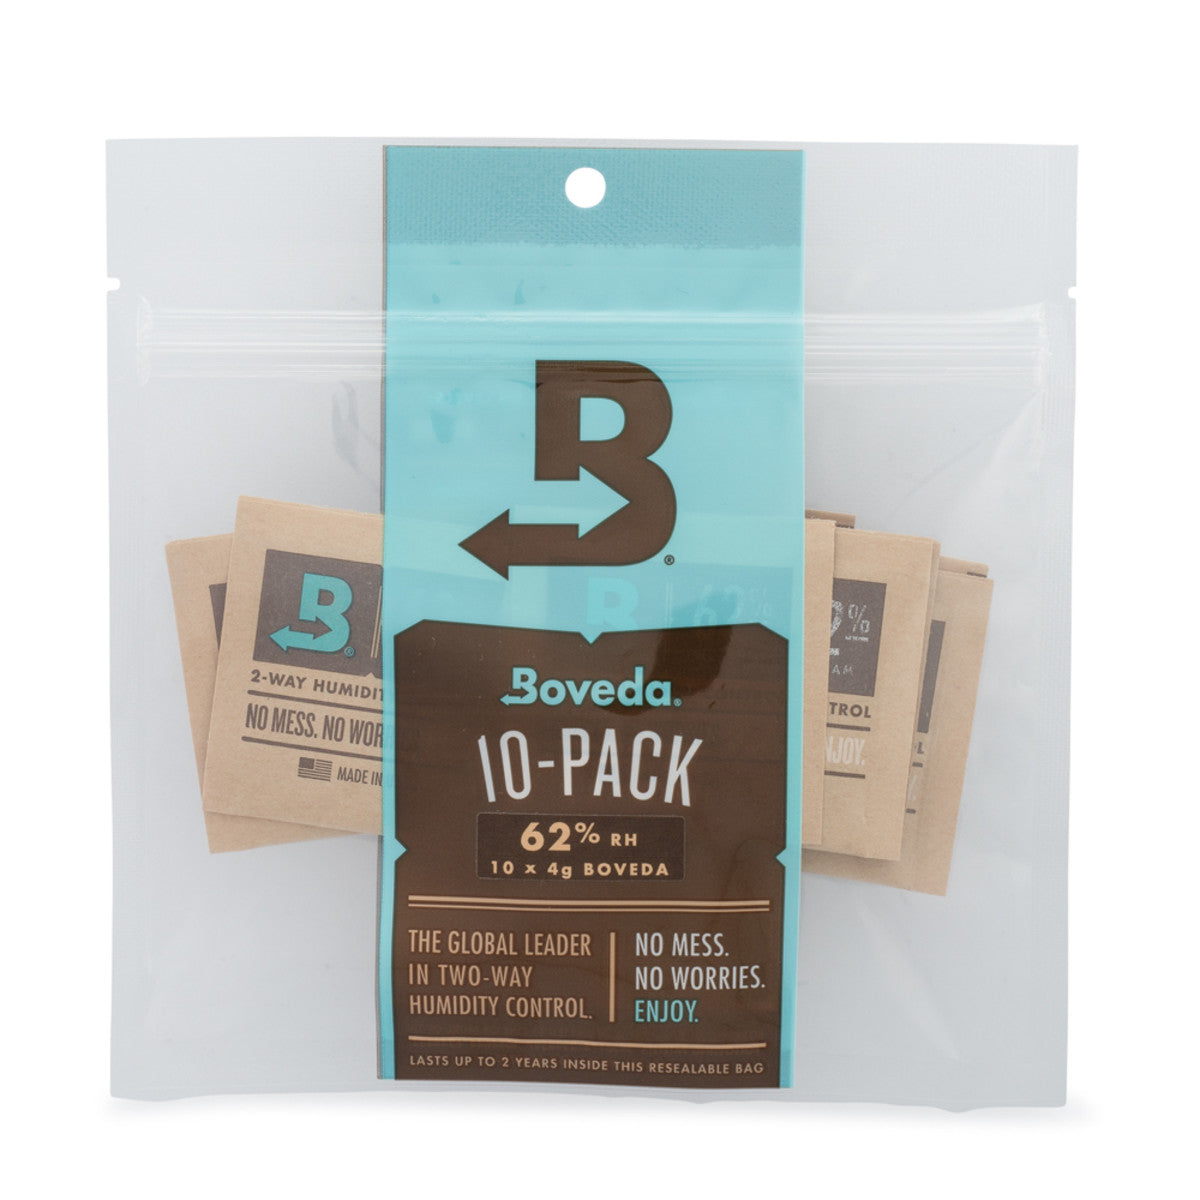 Boveda 4g 10 COUNT PACK